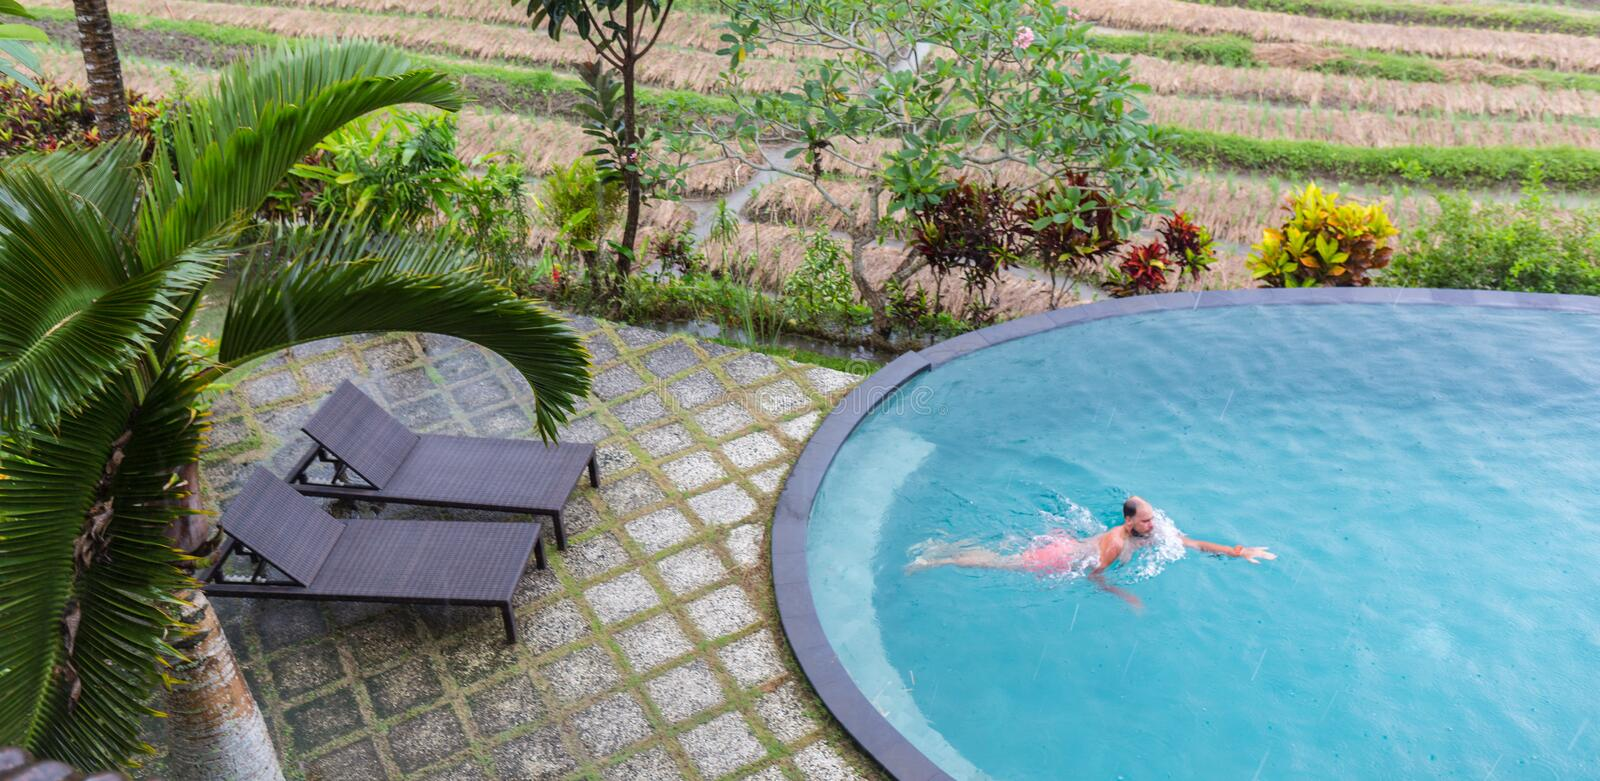 Luxury Resort. Man Relaxing In Infinity Swimming Pool Water. Beautiful Happy Healthy Male Model Enjoying Summer Travel stock images